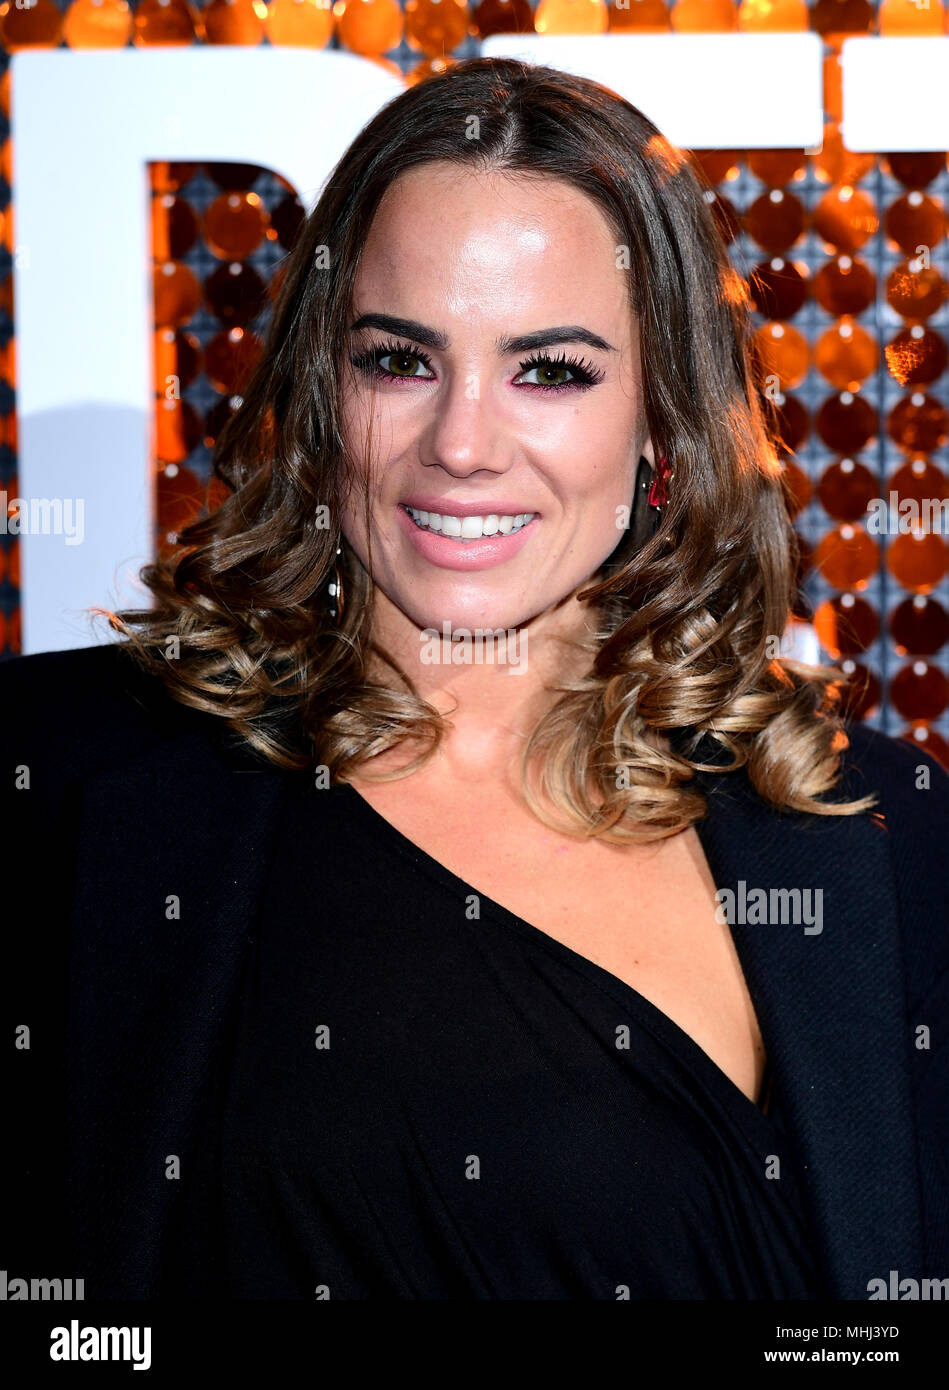 Emma Conybeare attending the special screening of I Feel Pretty held at the Picturehouse Central, Piccadilly, London. PRESS ASSOCIATION Photo. Picture date: Tuesday May 1, 2018. Photo credit should read: Ian West/PA Wire - Stock Image